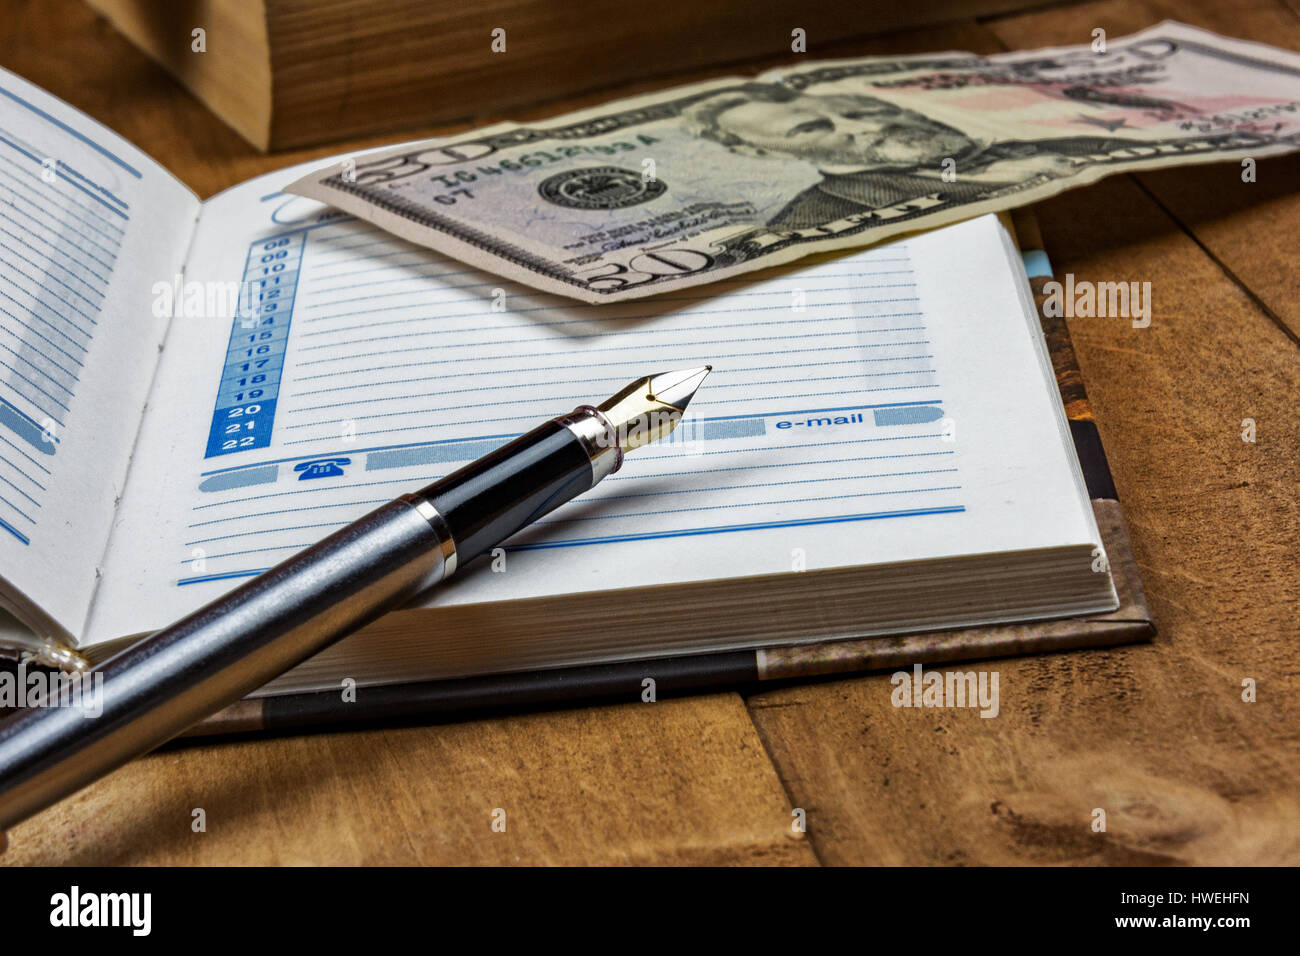 On the wooden surface is an open diary, a fountain pen and a money bill - Stock Image